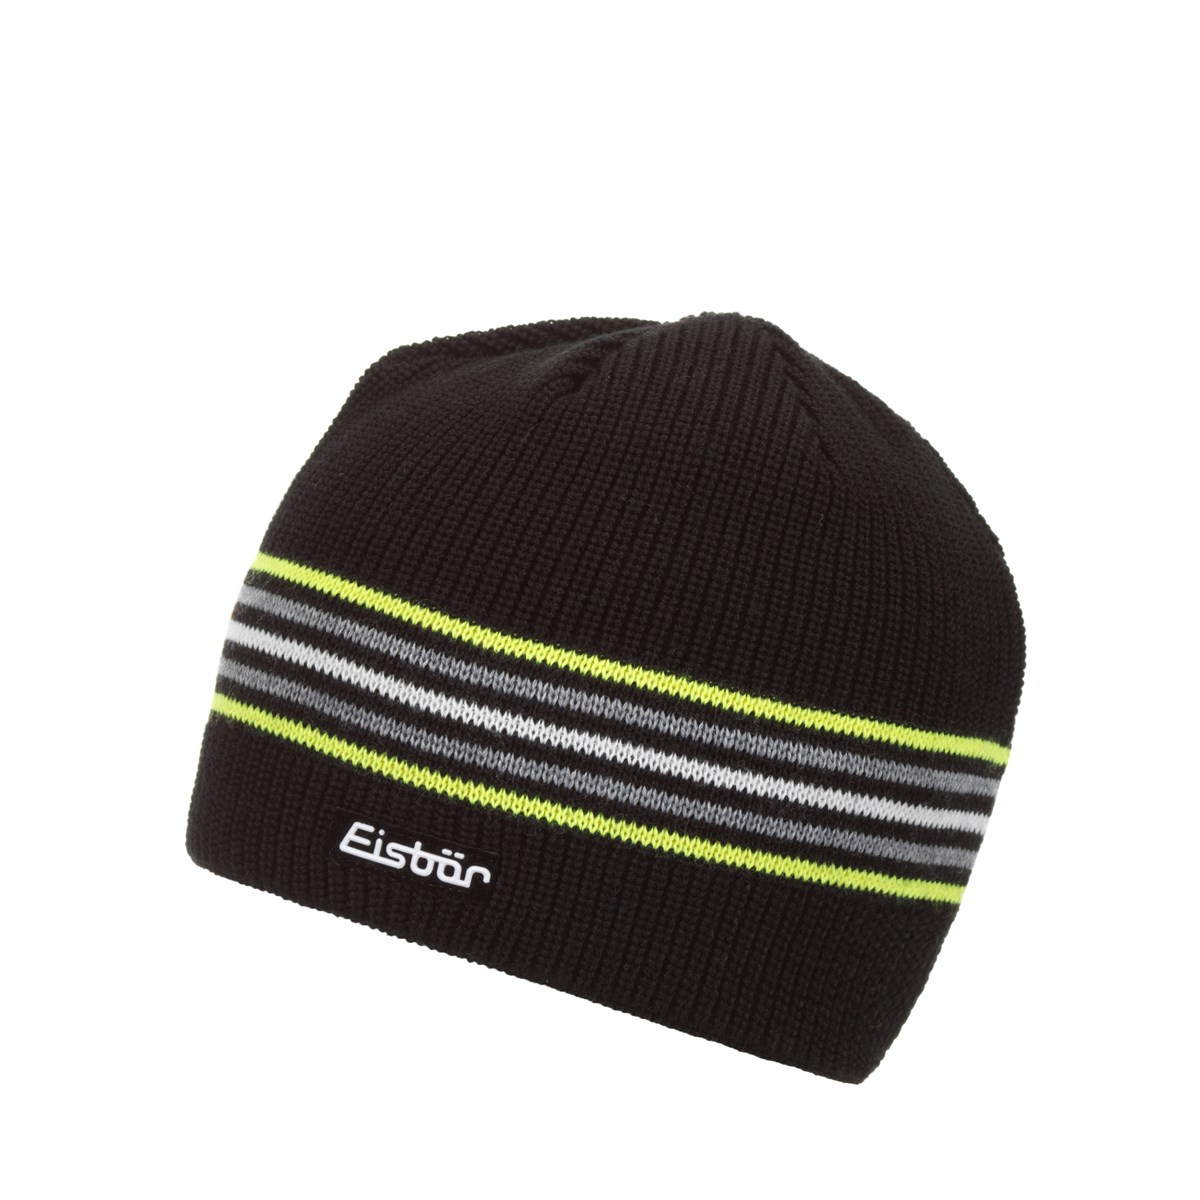 Eisbar Fision Merino Mens Beanie Hat 2019 Yellow   Black. 0 (Be the first  to add a review!) 7acaab0a4fa